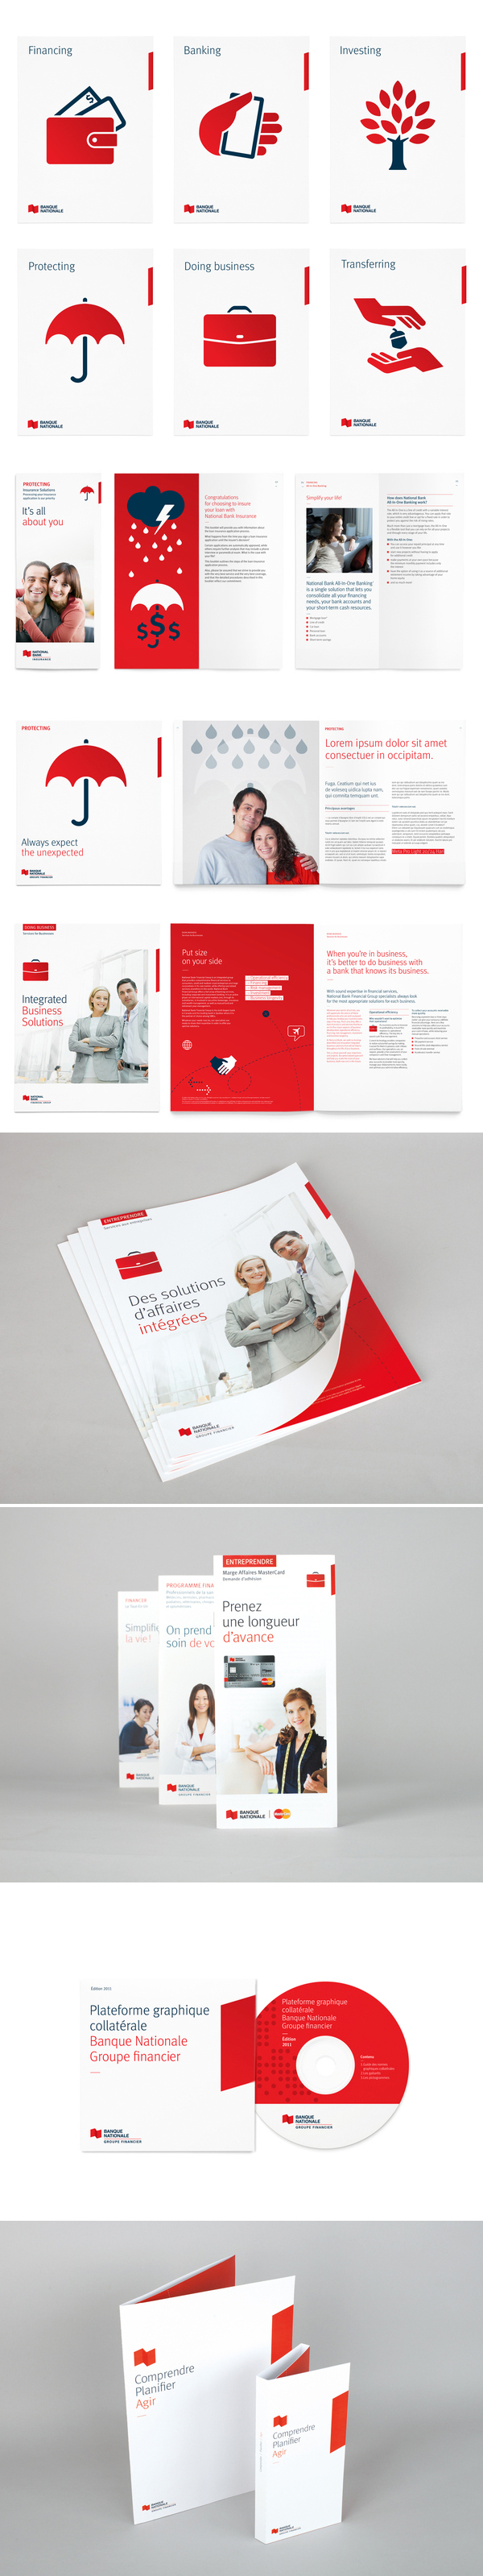 Pin by Theryanto Putra on Brochure Design Pinterest